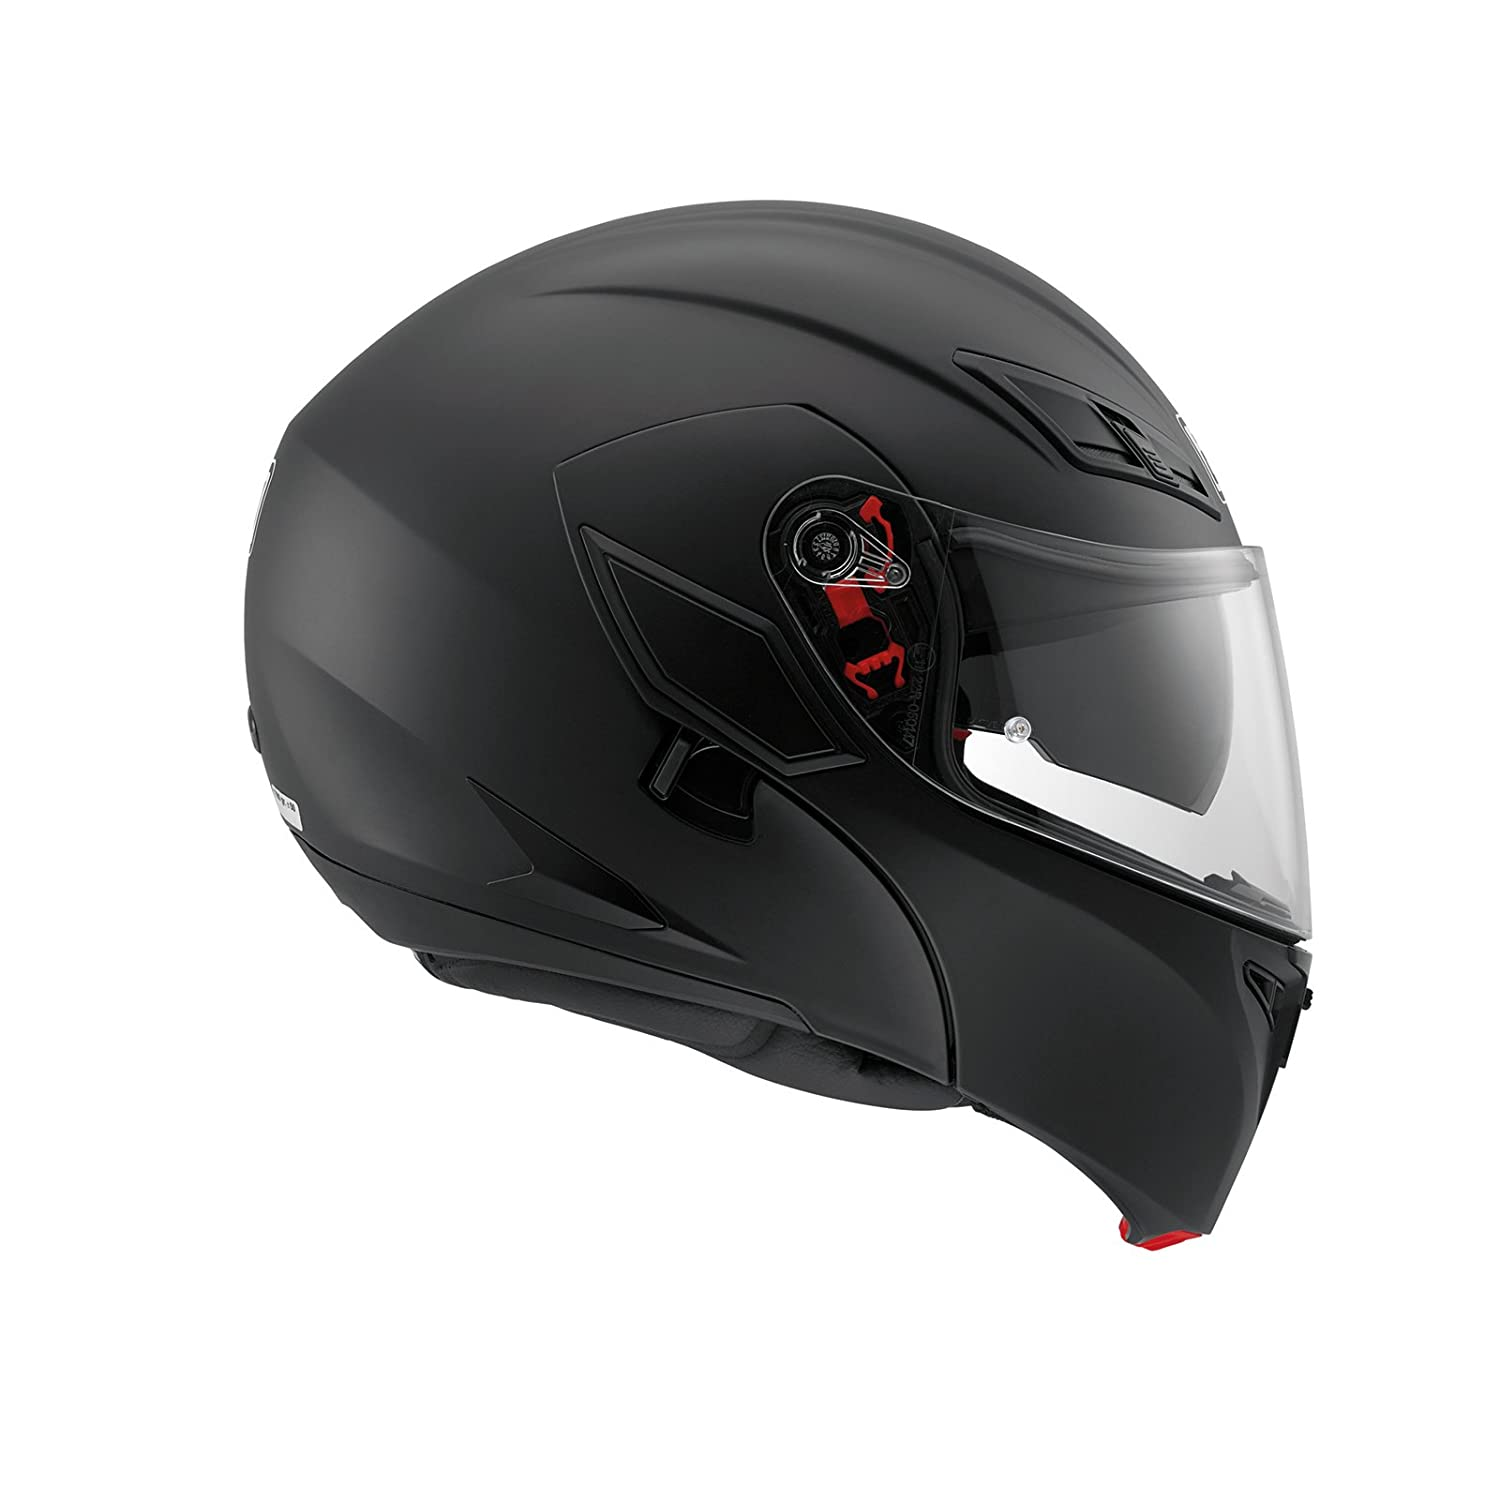 agv Compact-St Mono Motorcycle Touring Helmet In Black